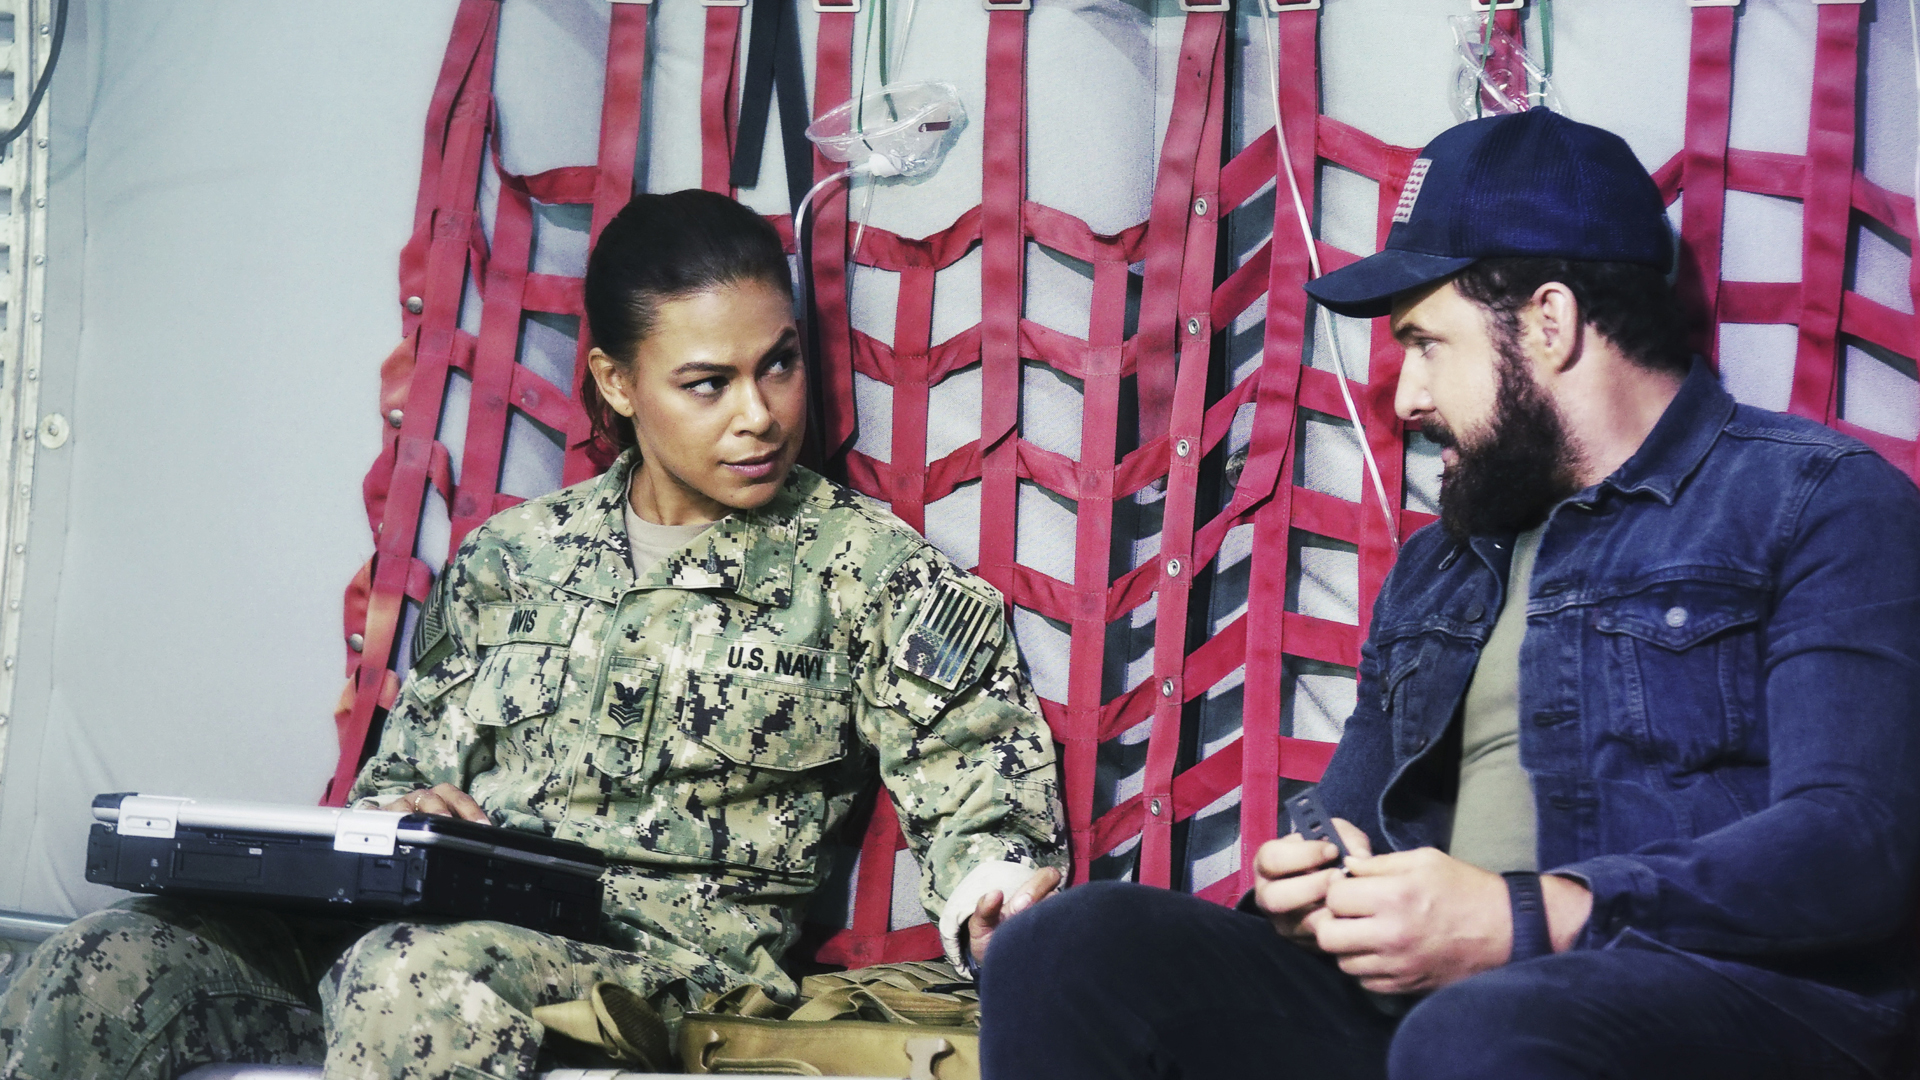 Watch SEAL Team Season 1 Episode 3: Boarding Party - Full show on CBS All  Access